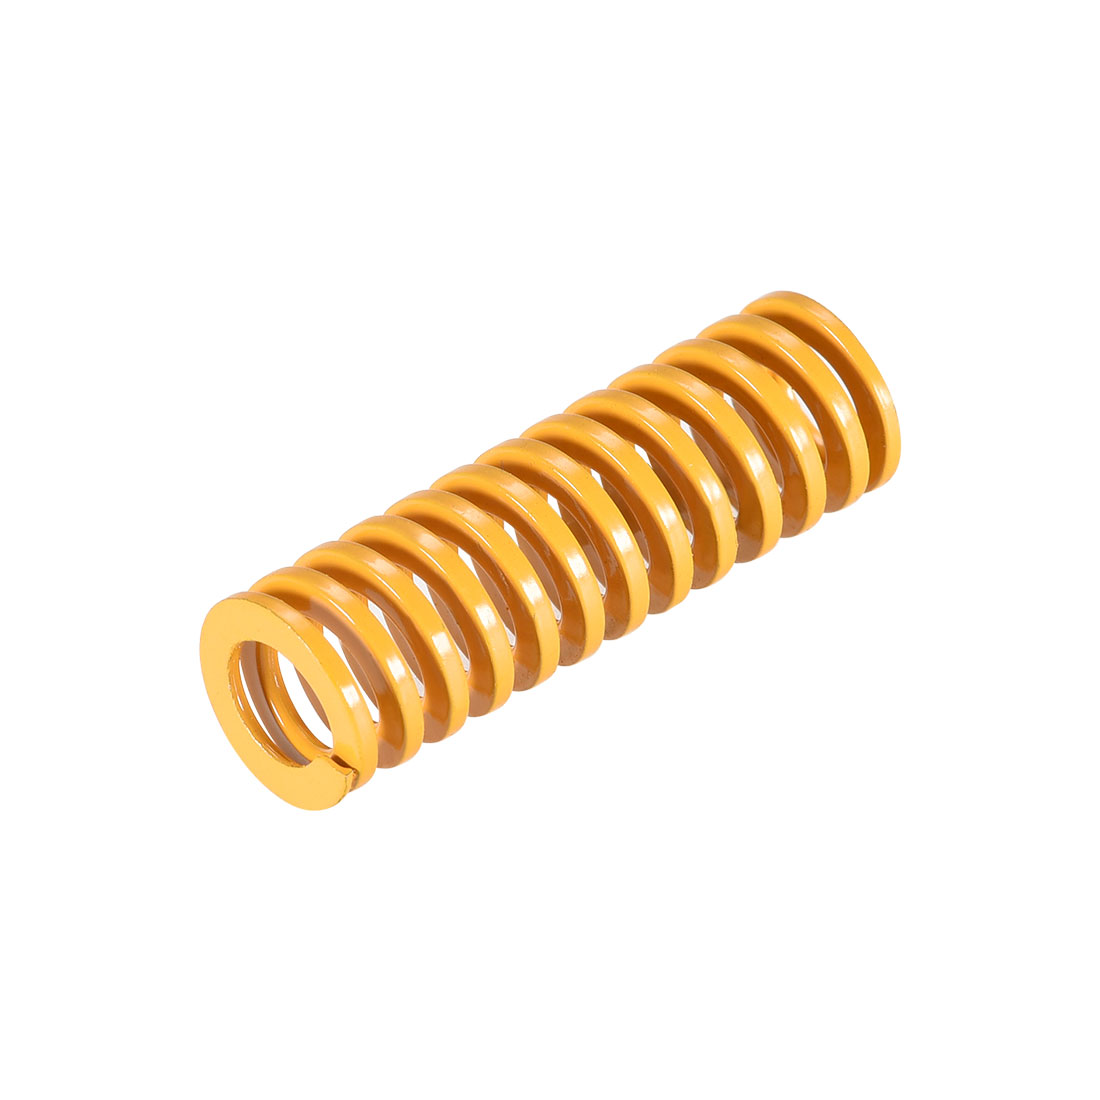 Heated Bed Springs for 3D Printer Light Load Compression Spring, 8 x 25 mm 10pcs